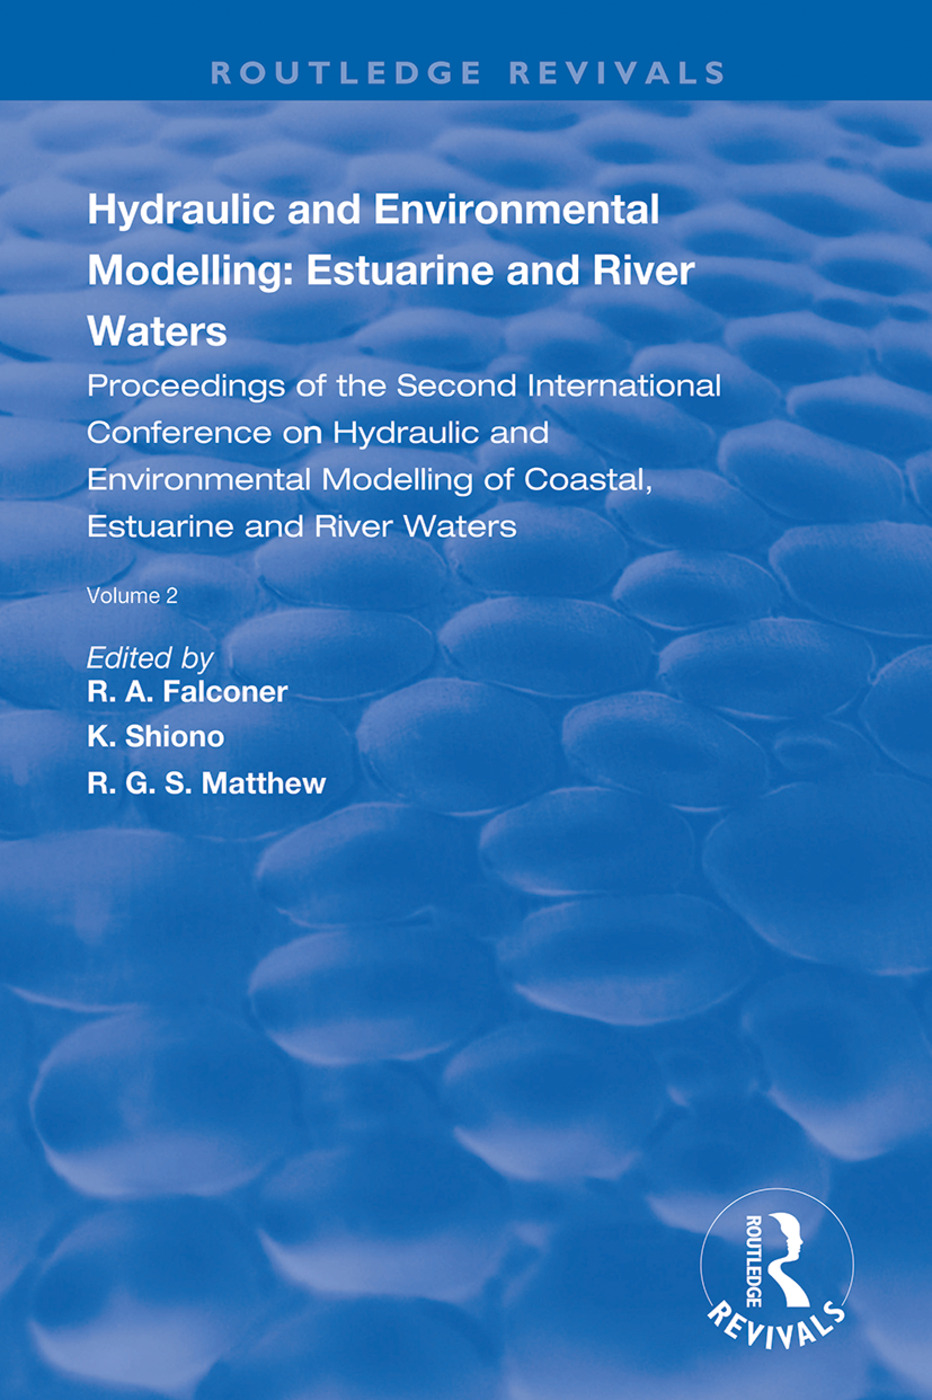 Hydraulic and Environmental Modelling: Estuarine and River Waters: Proceedings of the Second International Conference on Hydraulic and Environmental Modelling of Coastal, Estuarine and River Waters, Vol. 2. book cover